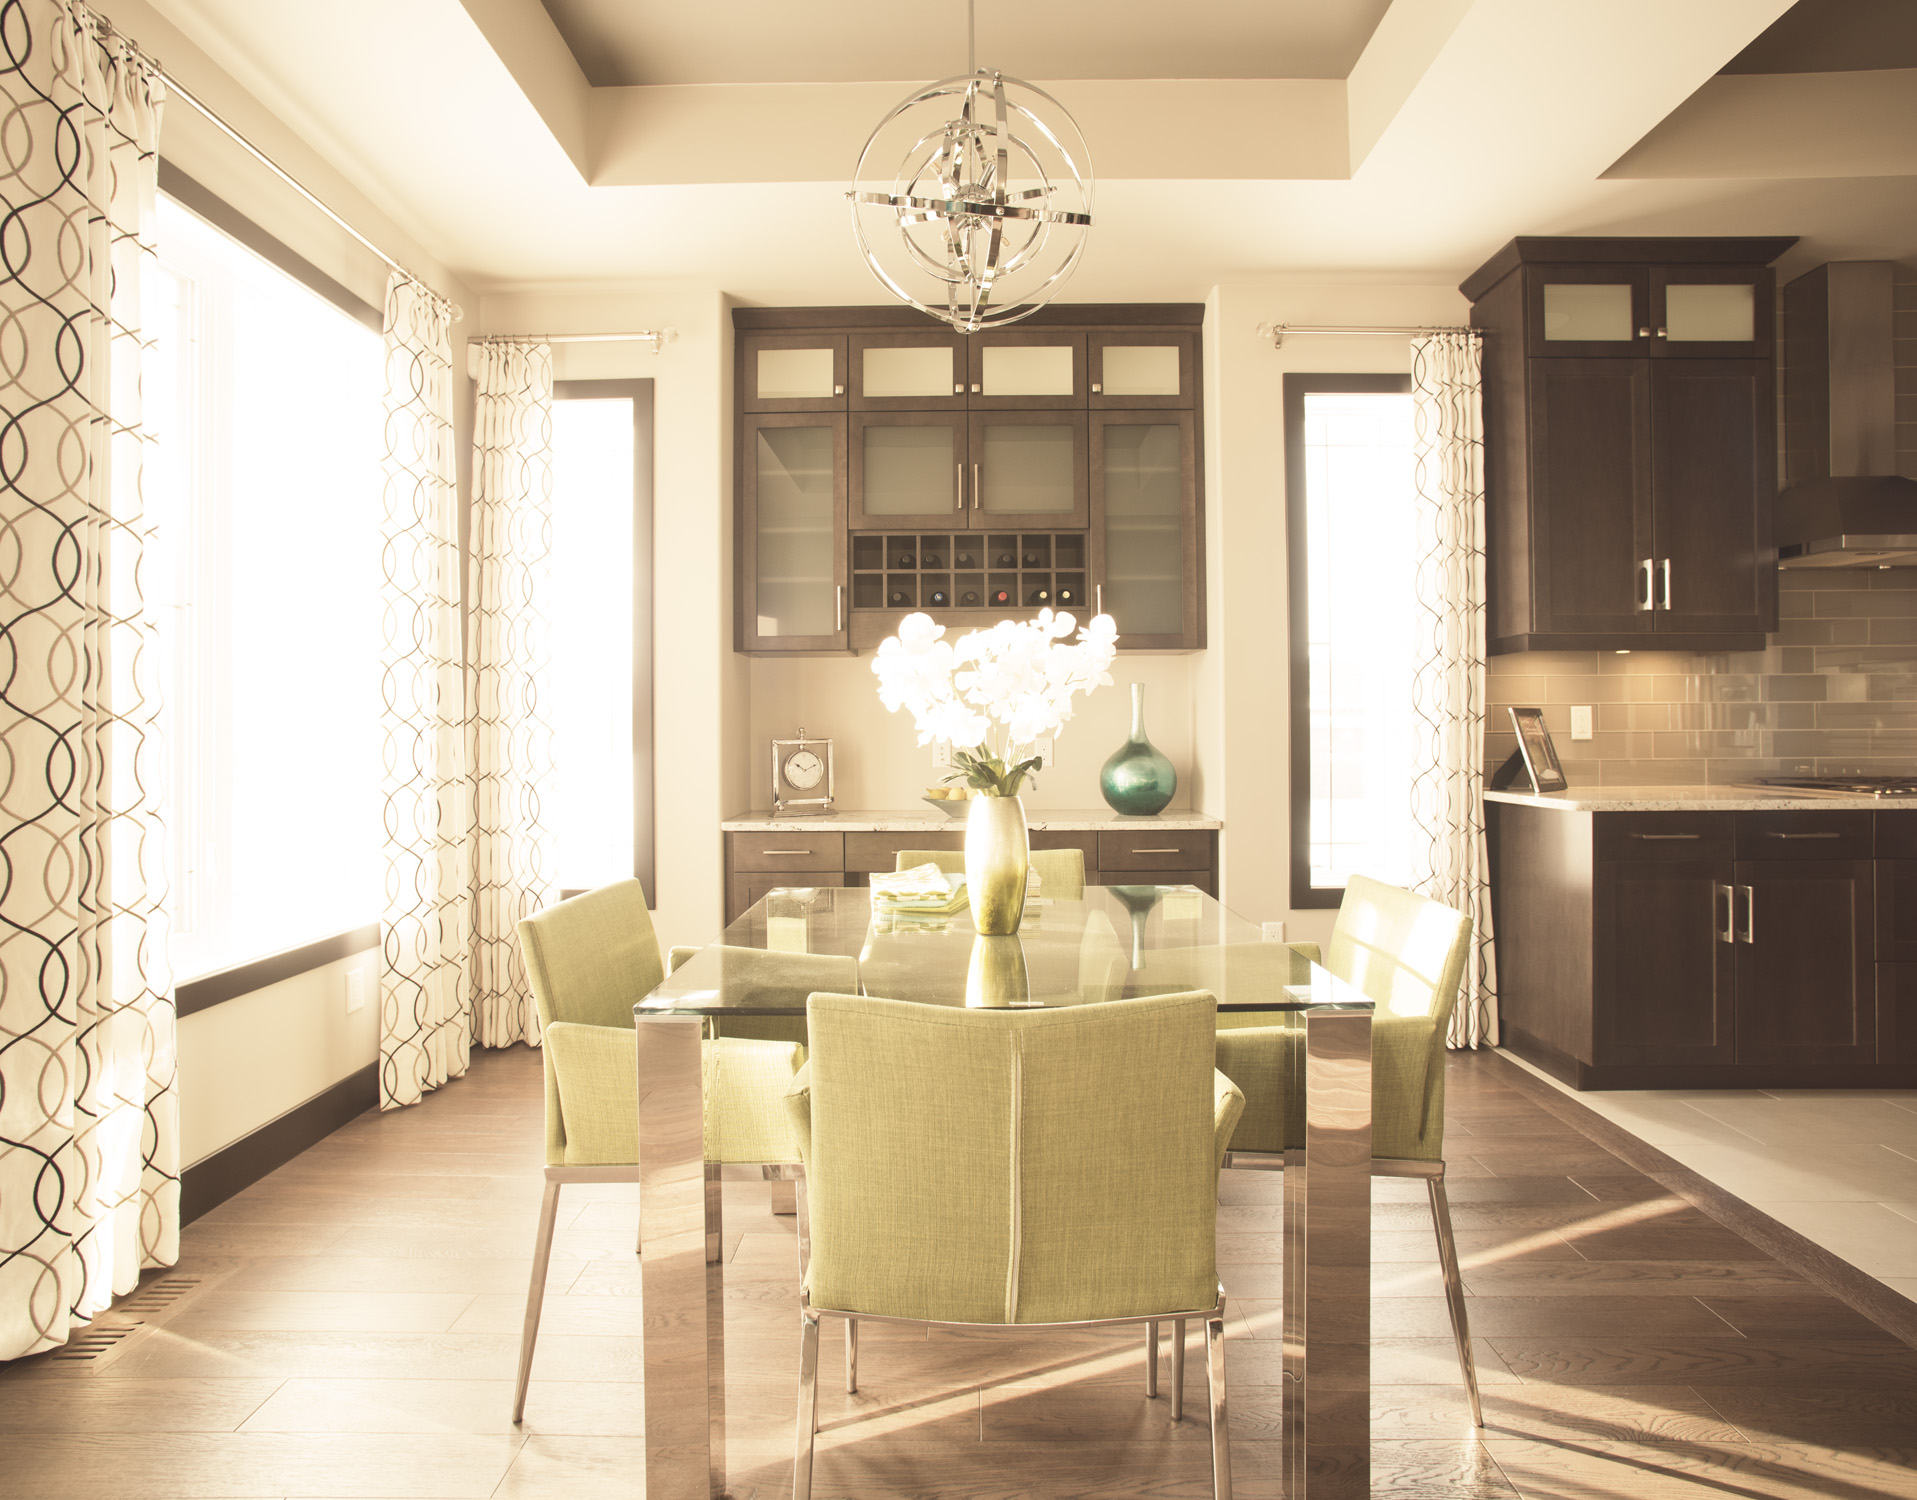 The Richmond, one of our latest show homes in Edmonton